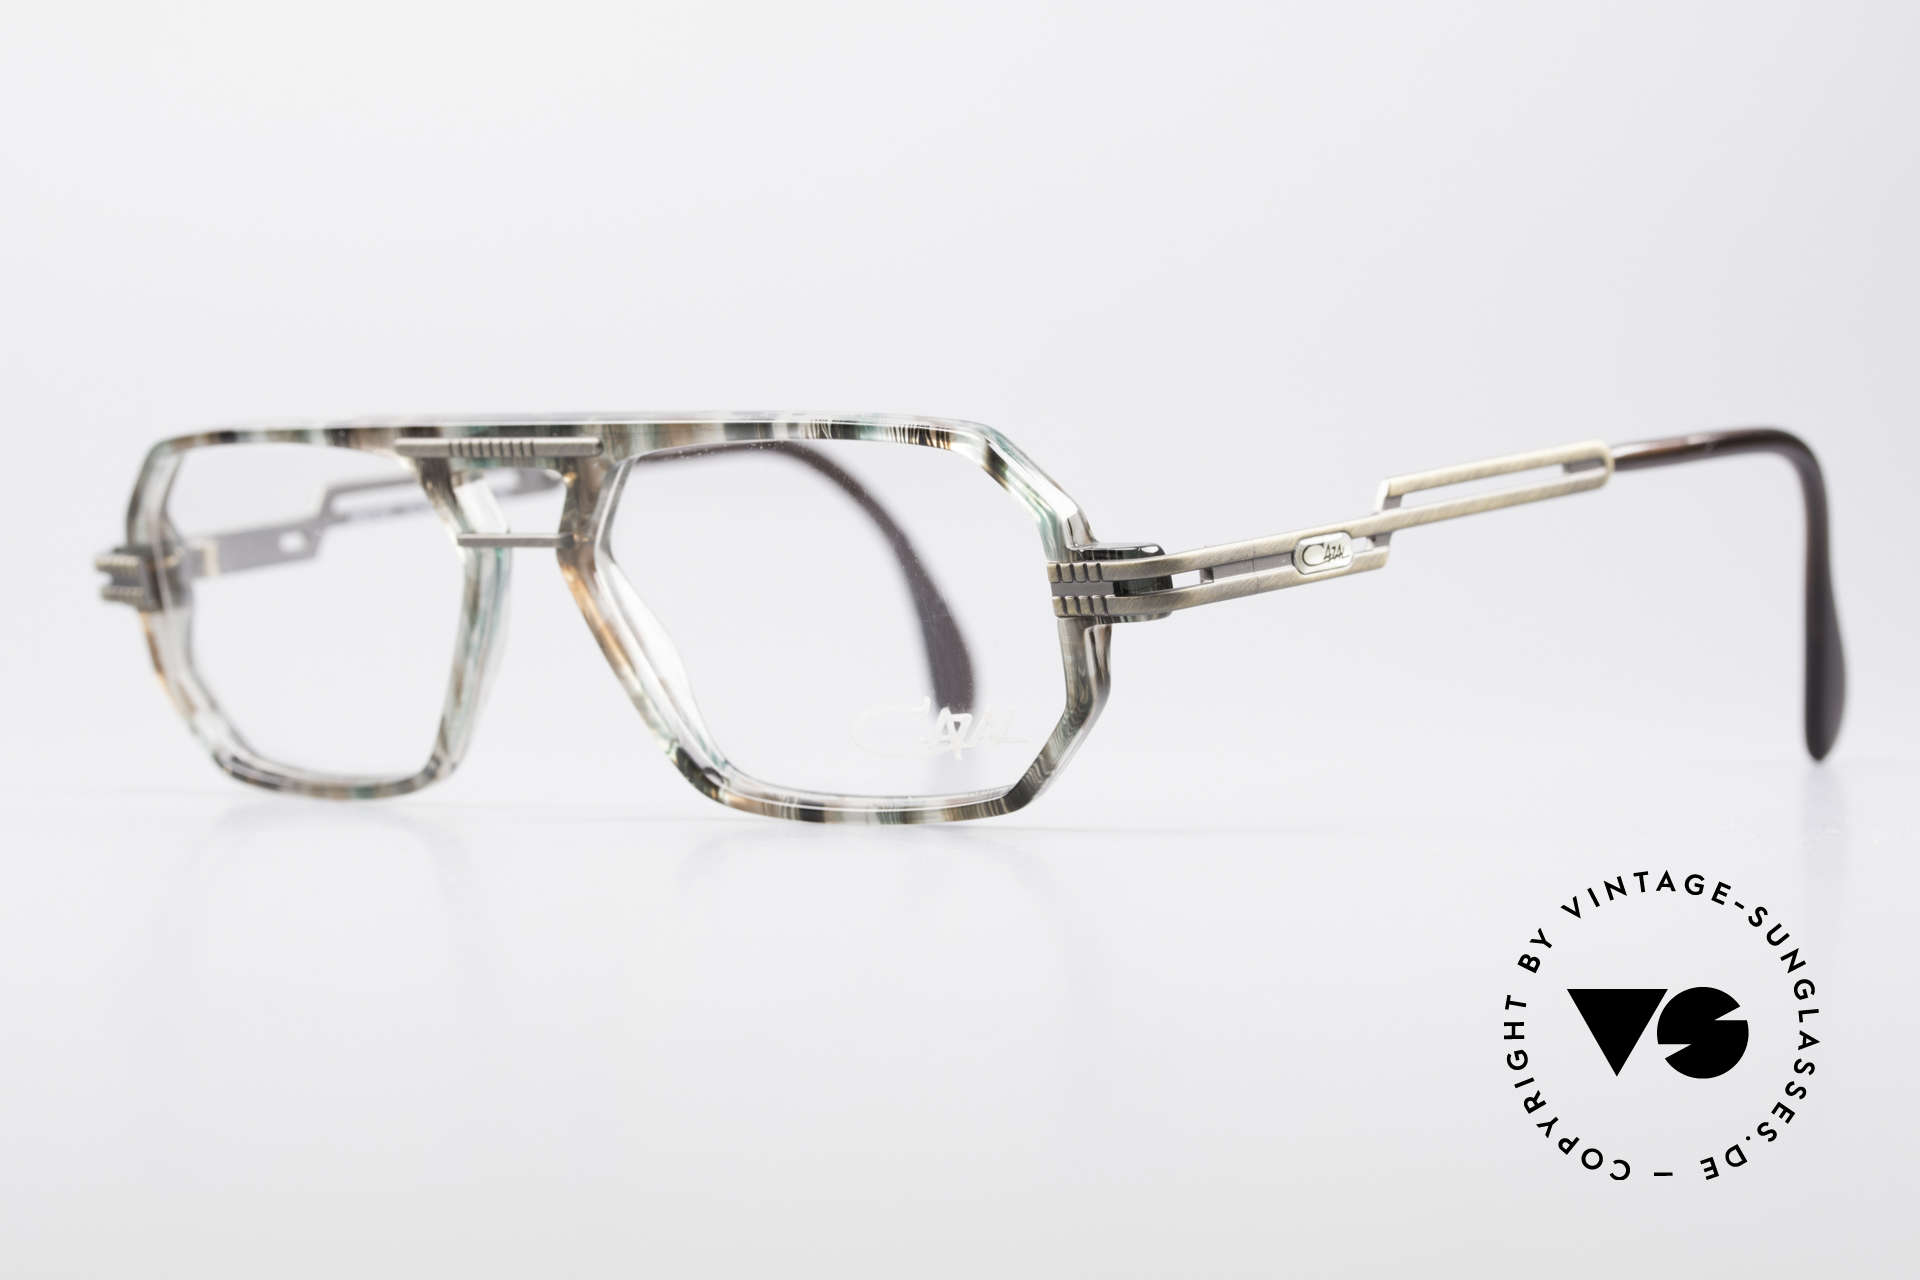 Cazal 651 90's True Vintage Eyeglasses, brushed metal parts on arms and front; 1. class quality, Made for Men